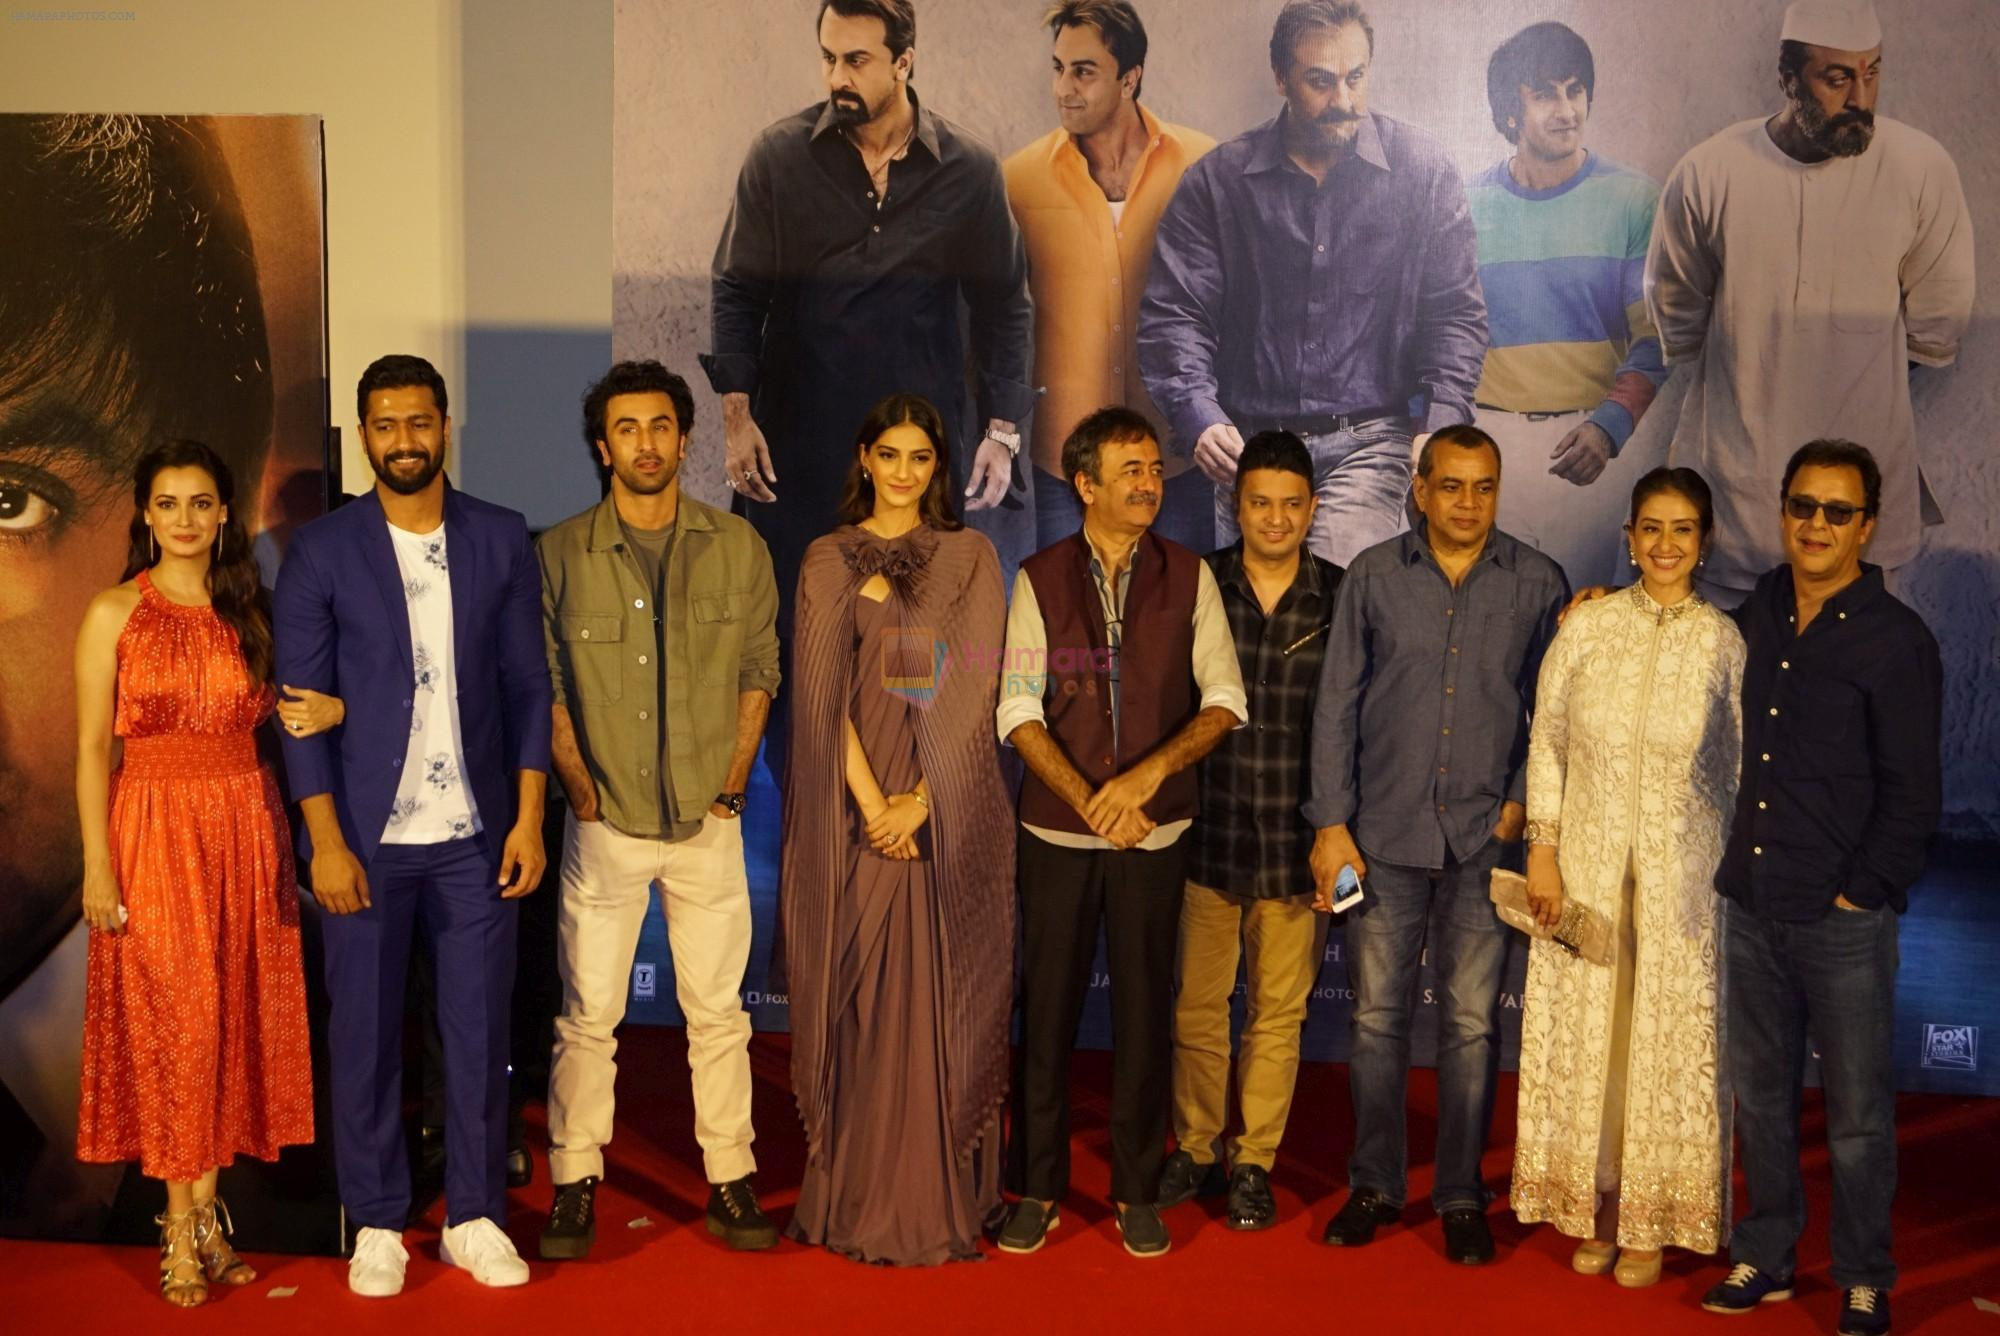 Sonam Kapoor, Manisha Koirala, Vicky Kaushal, Dia Mirza, Ranbir Kapoor, Rajkumar Hirani, Vidhu Vinod Chopra, Paresh Rawal, Bhushan Kumar at the Trailer Launch Of Film Sanju on 30th May 2018